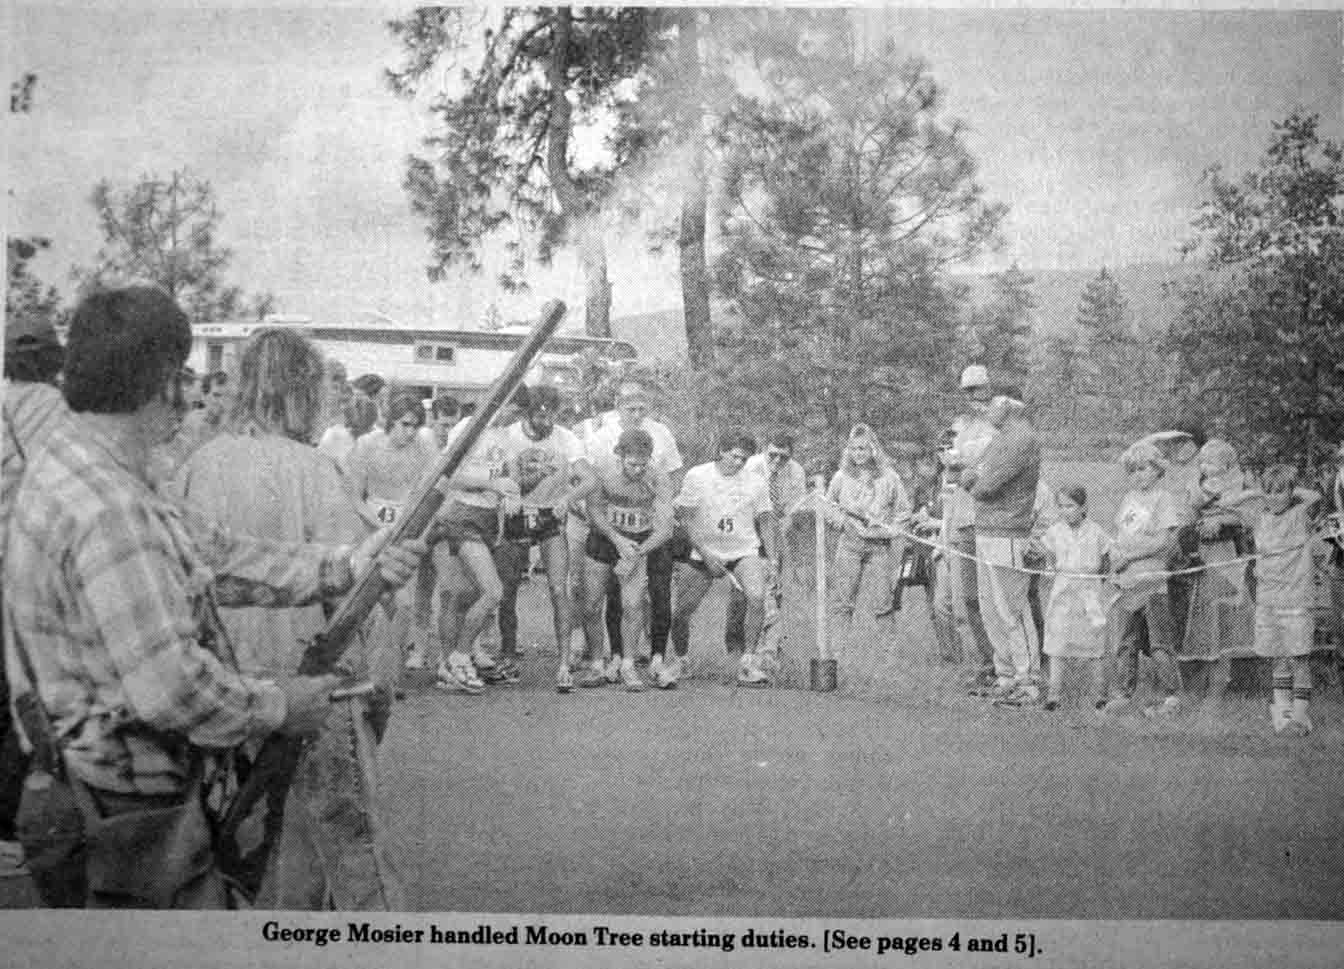 Moon Tree Run June 4, 1988 start of run